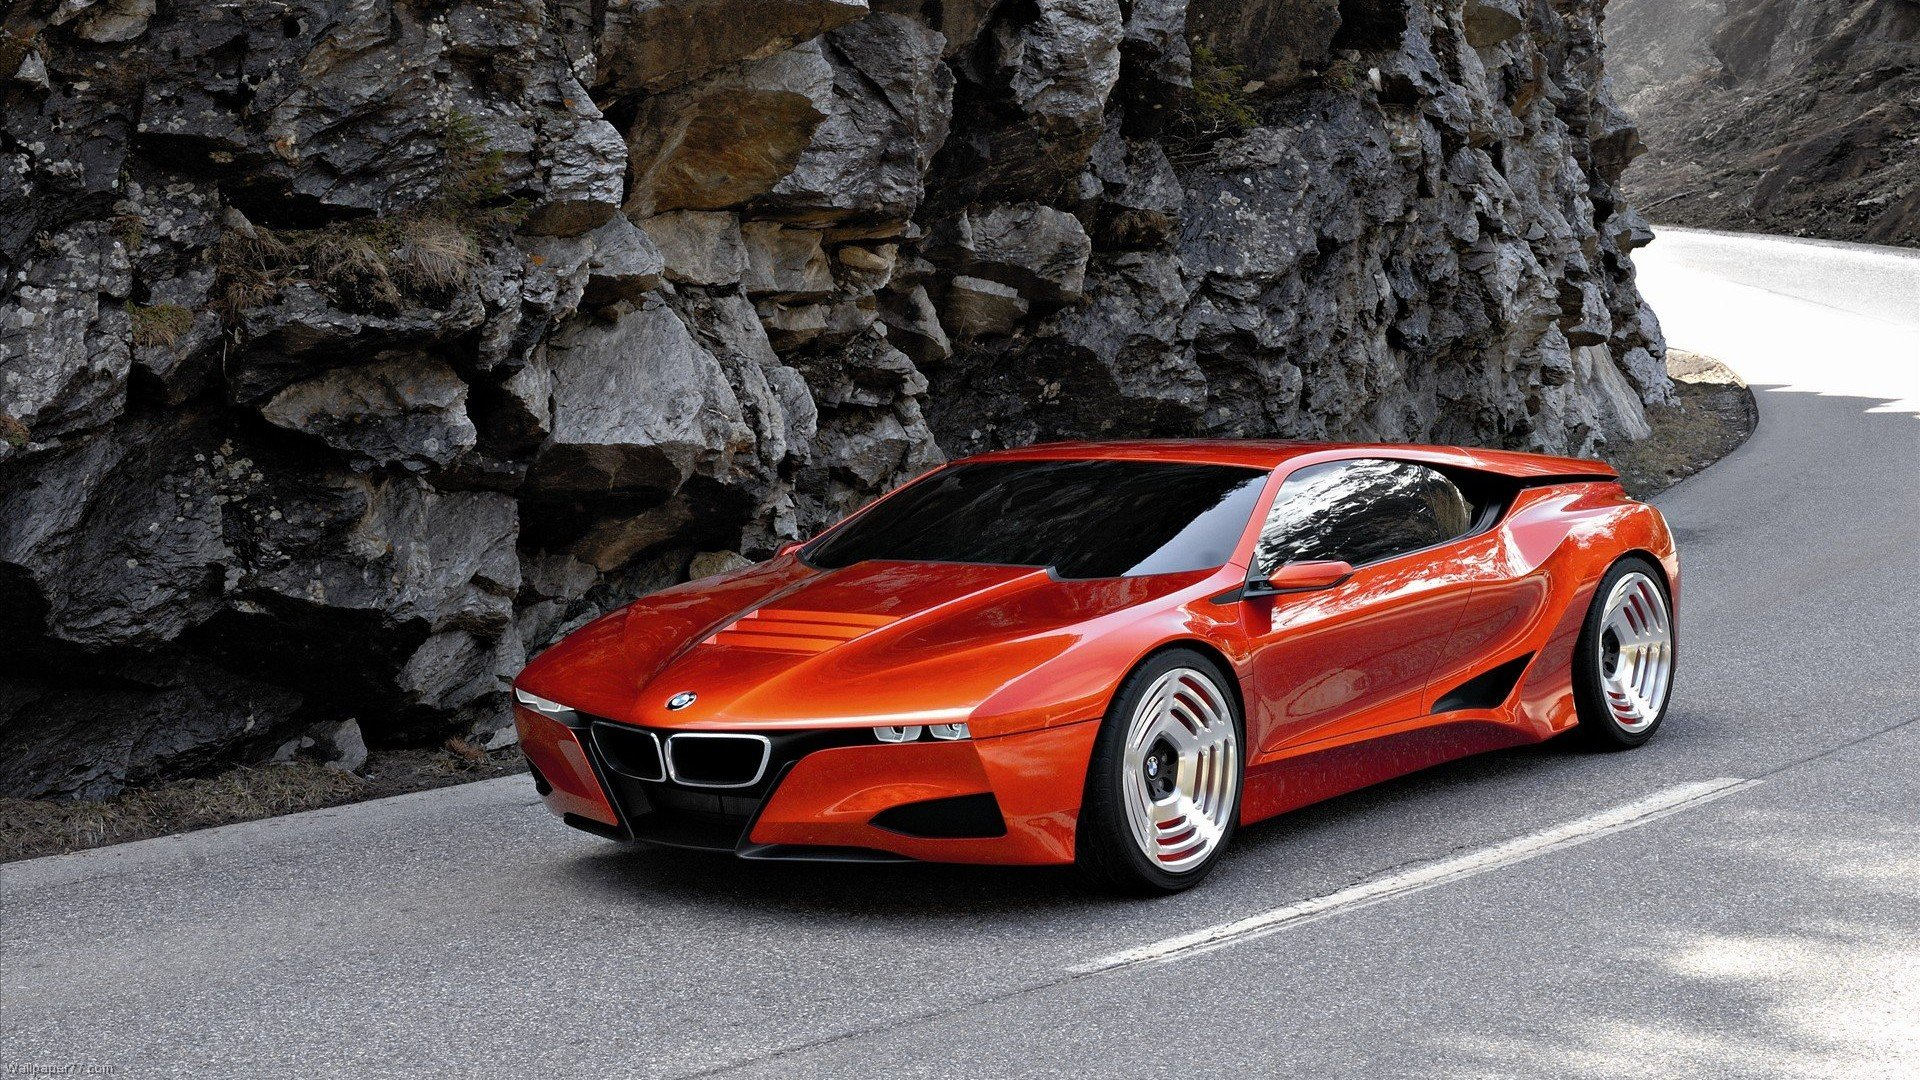 BMW M1 Homage Concept Red bmw wallpapers car wallpapers 1920x1080 1920x1080